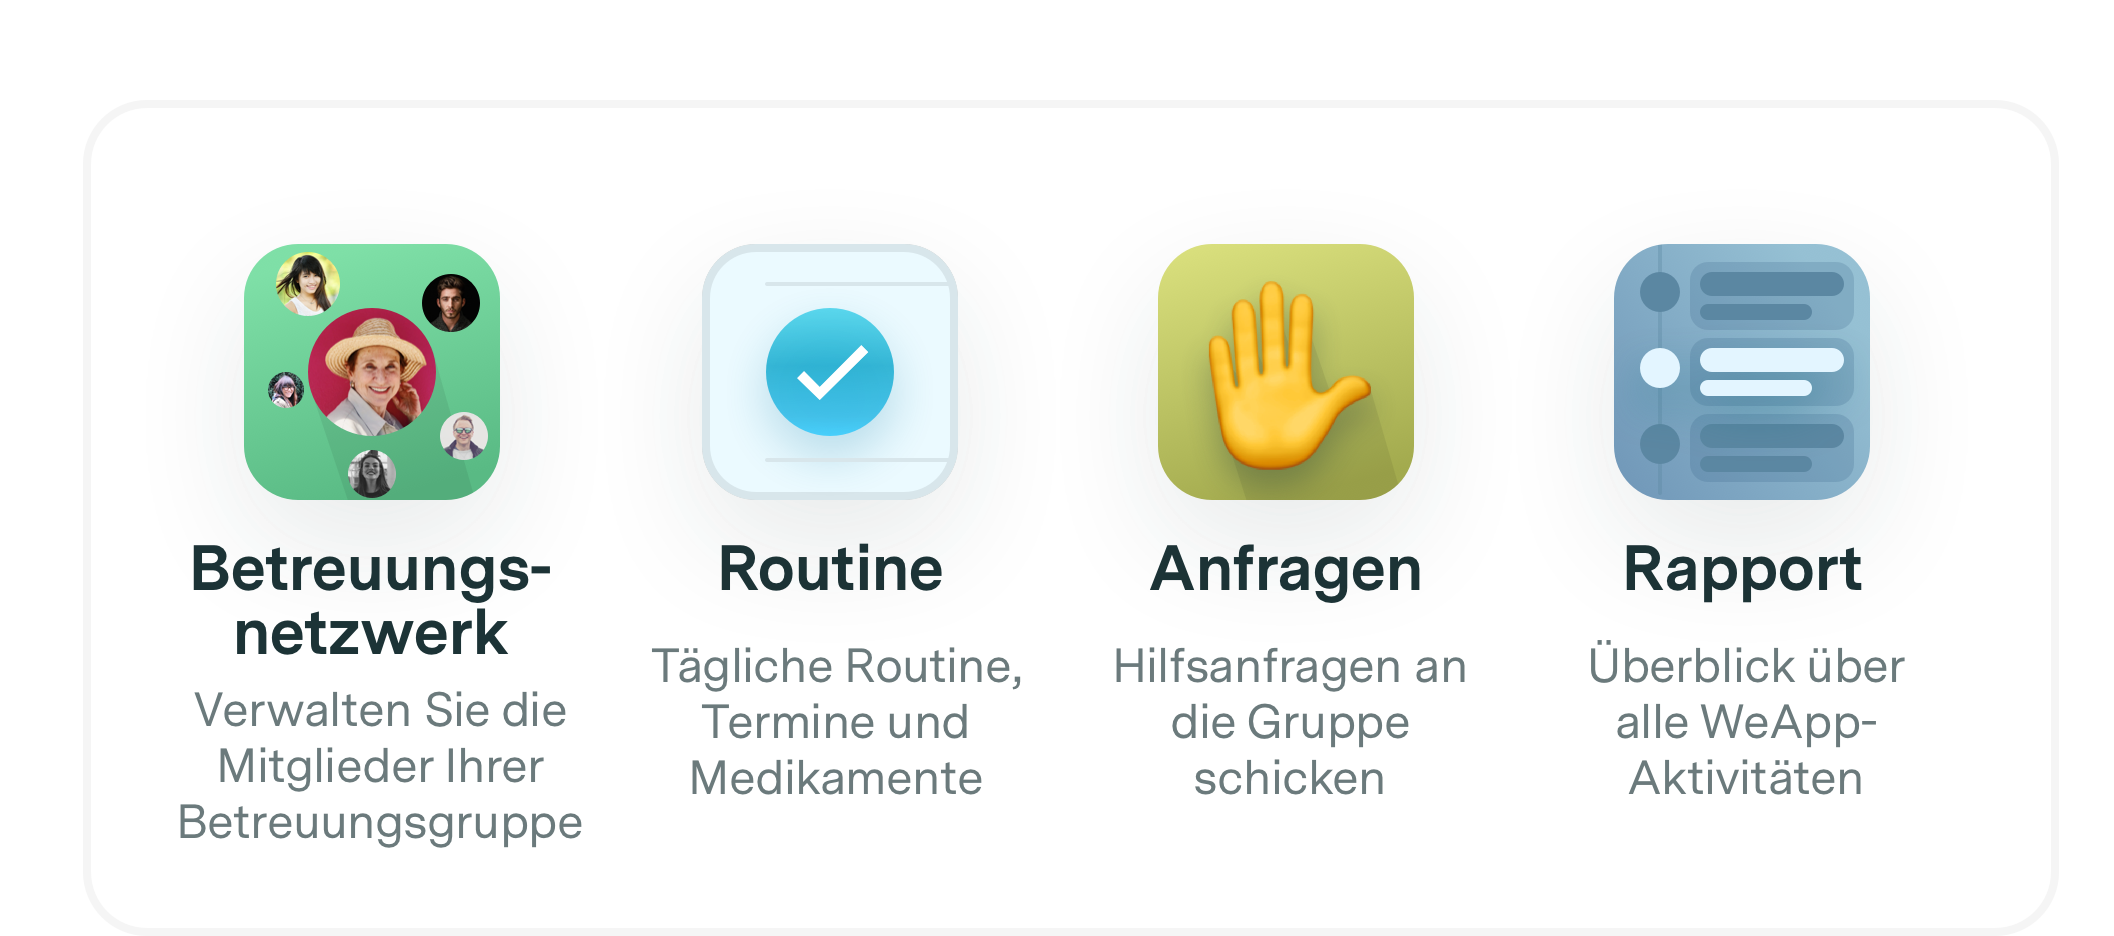 for-carers-weapps-de@2x